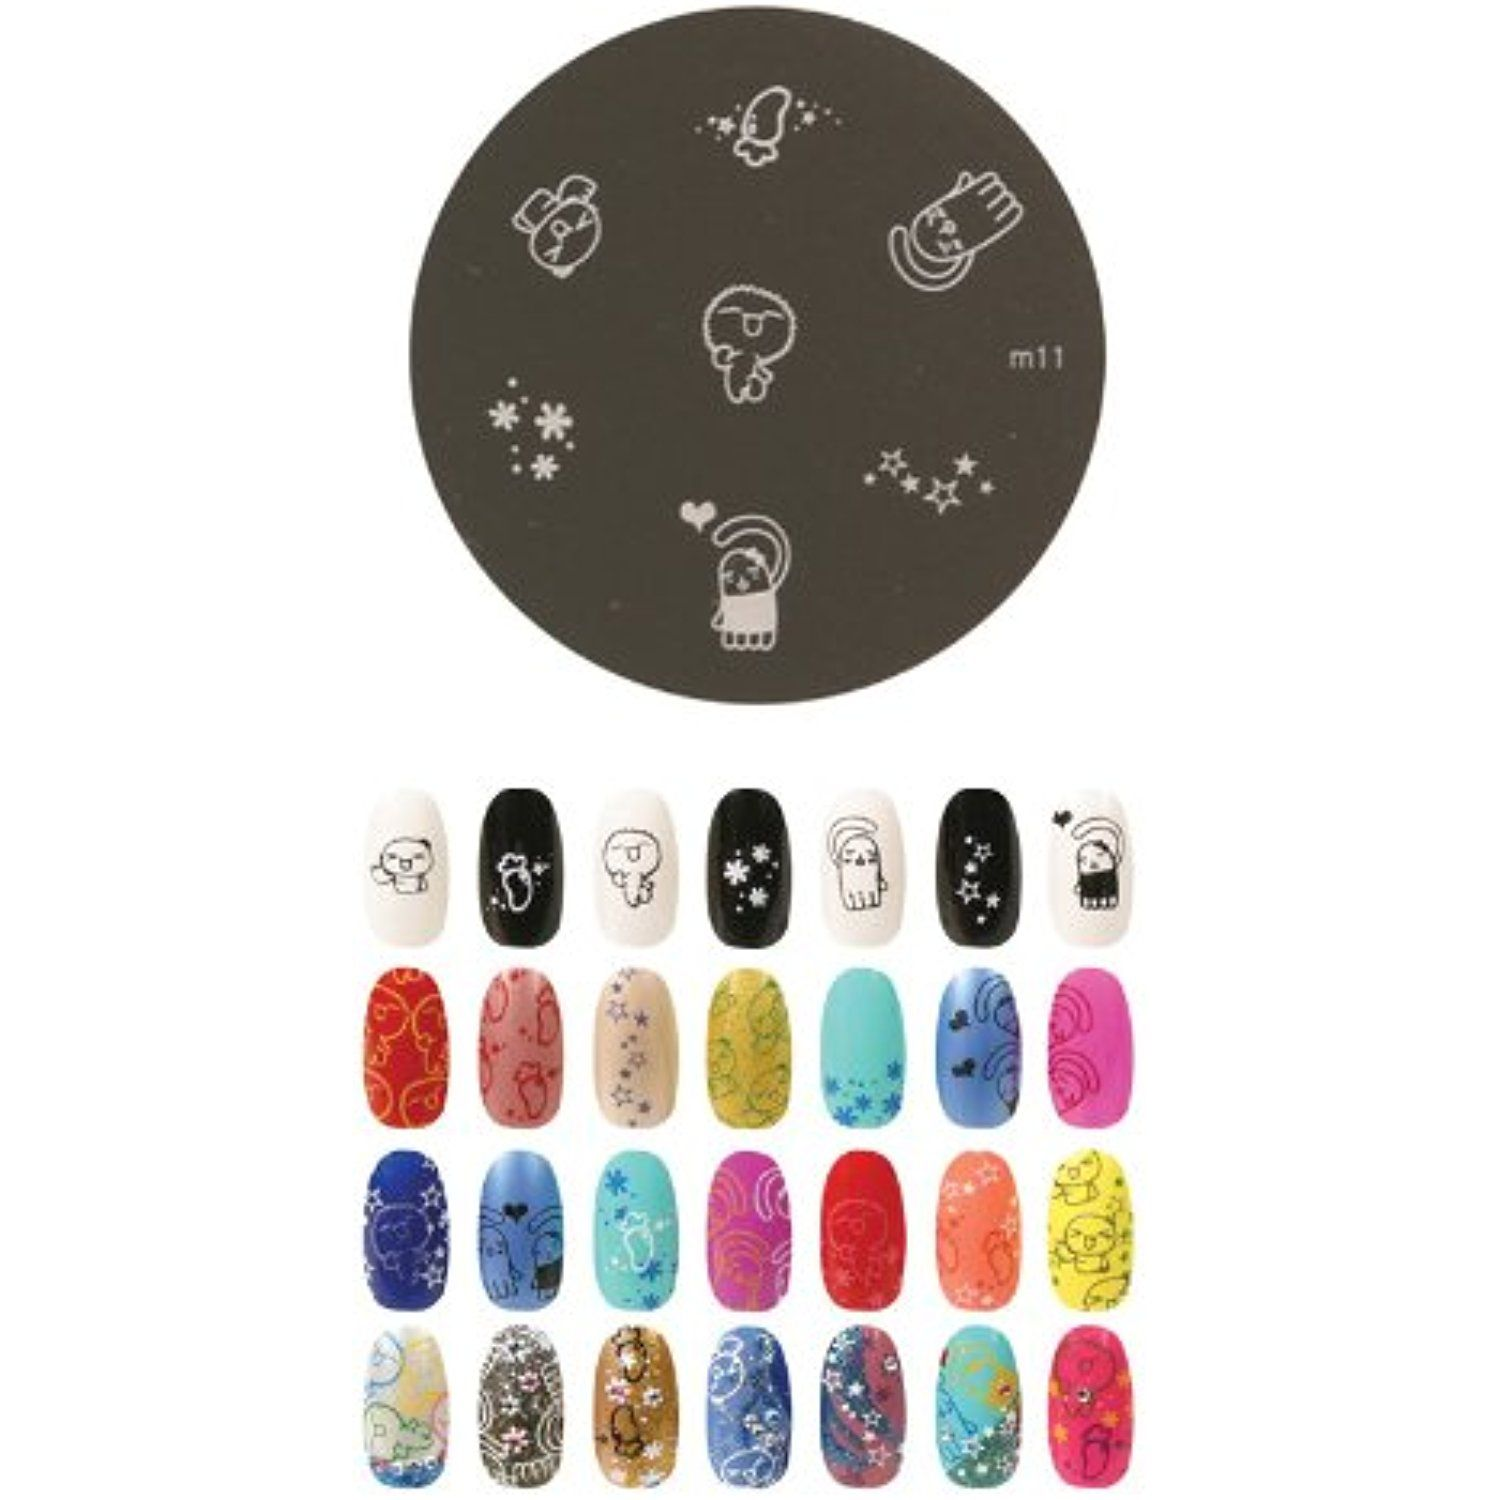 Konad Stamping Nail Art Image Plate M11 Learn More By Visiting